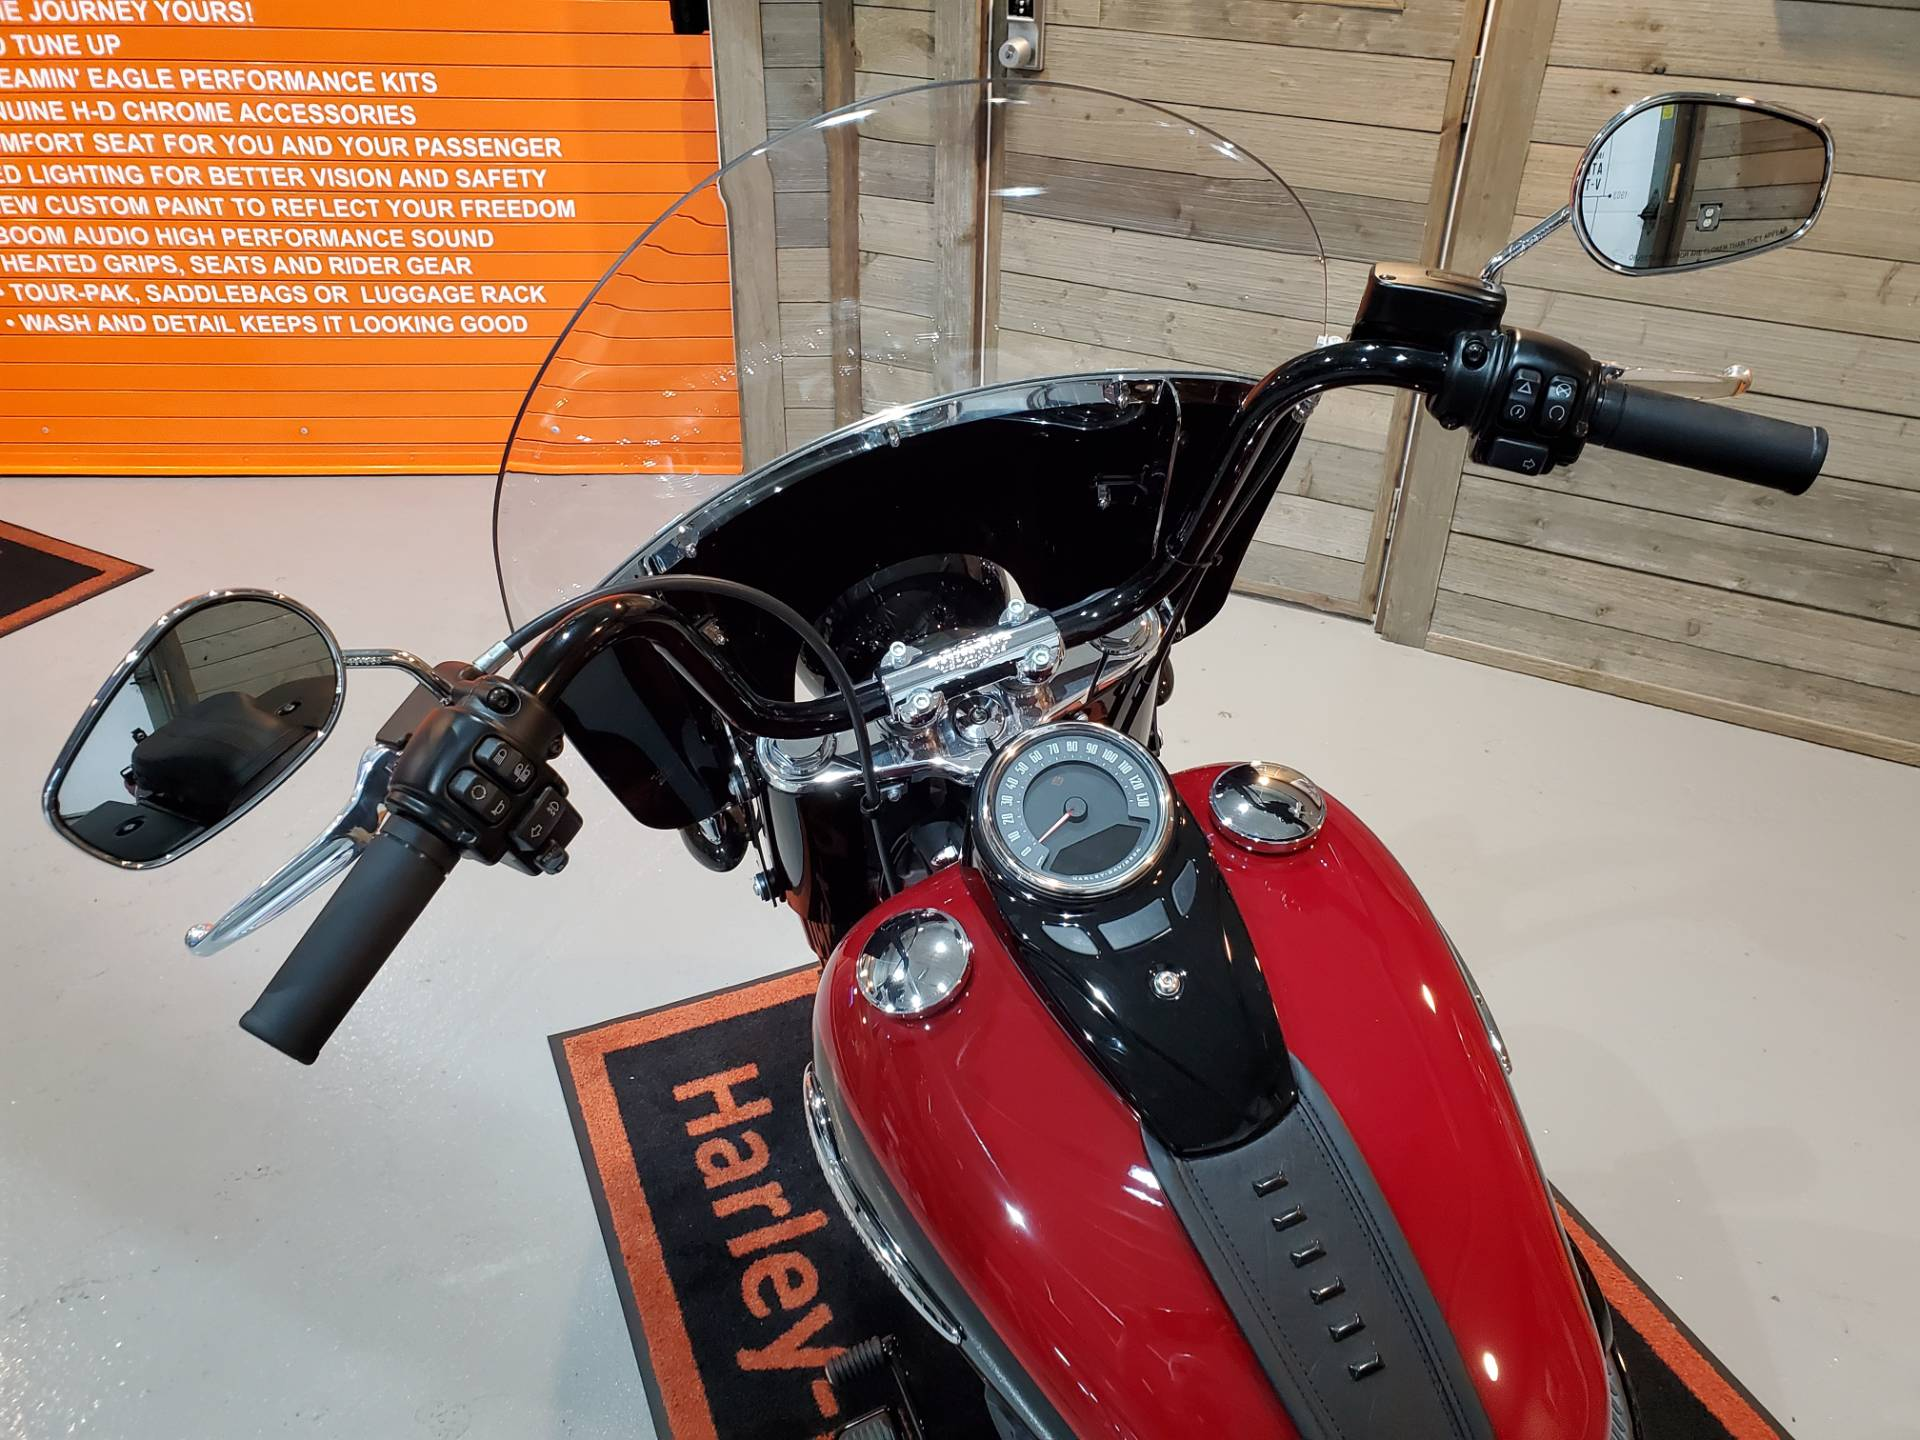 2020 Harley-Davidson Heritage Classic 114 in Kokomo, Indiana - Photo 14